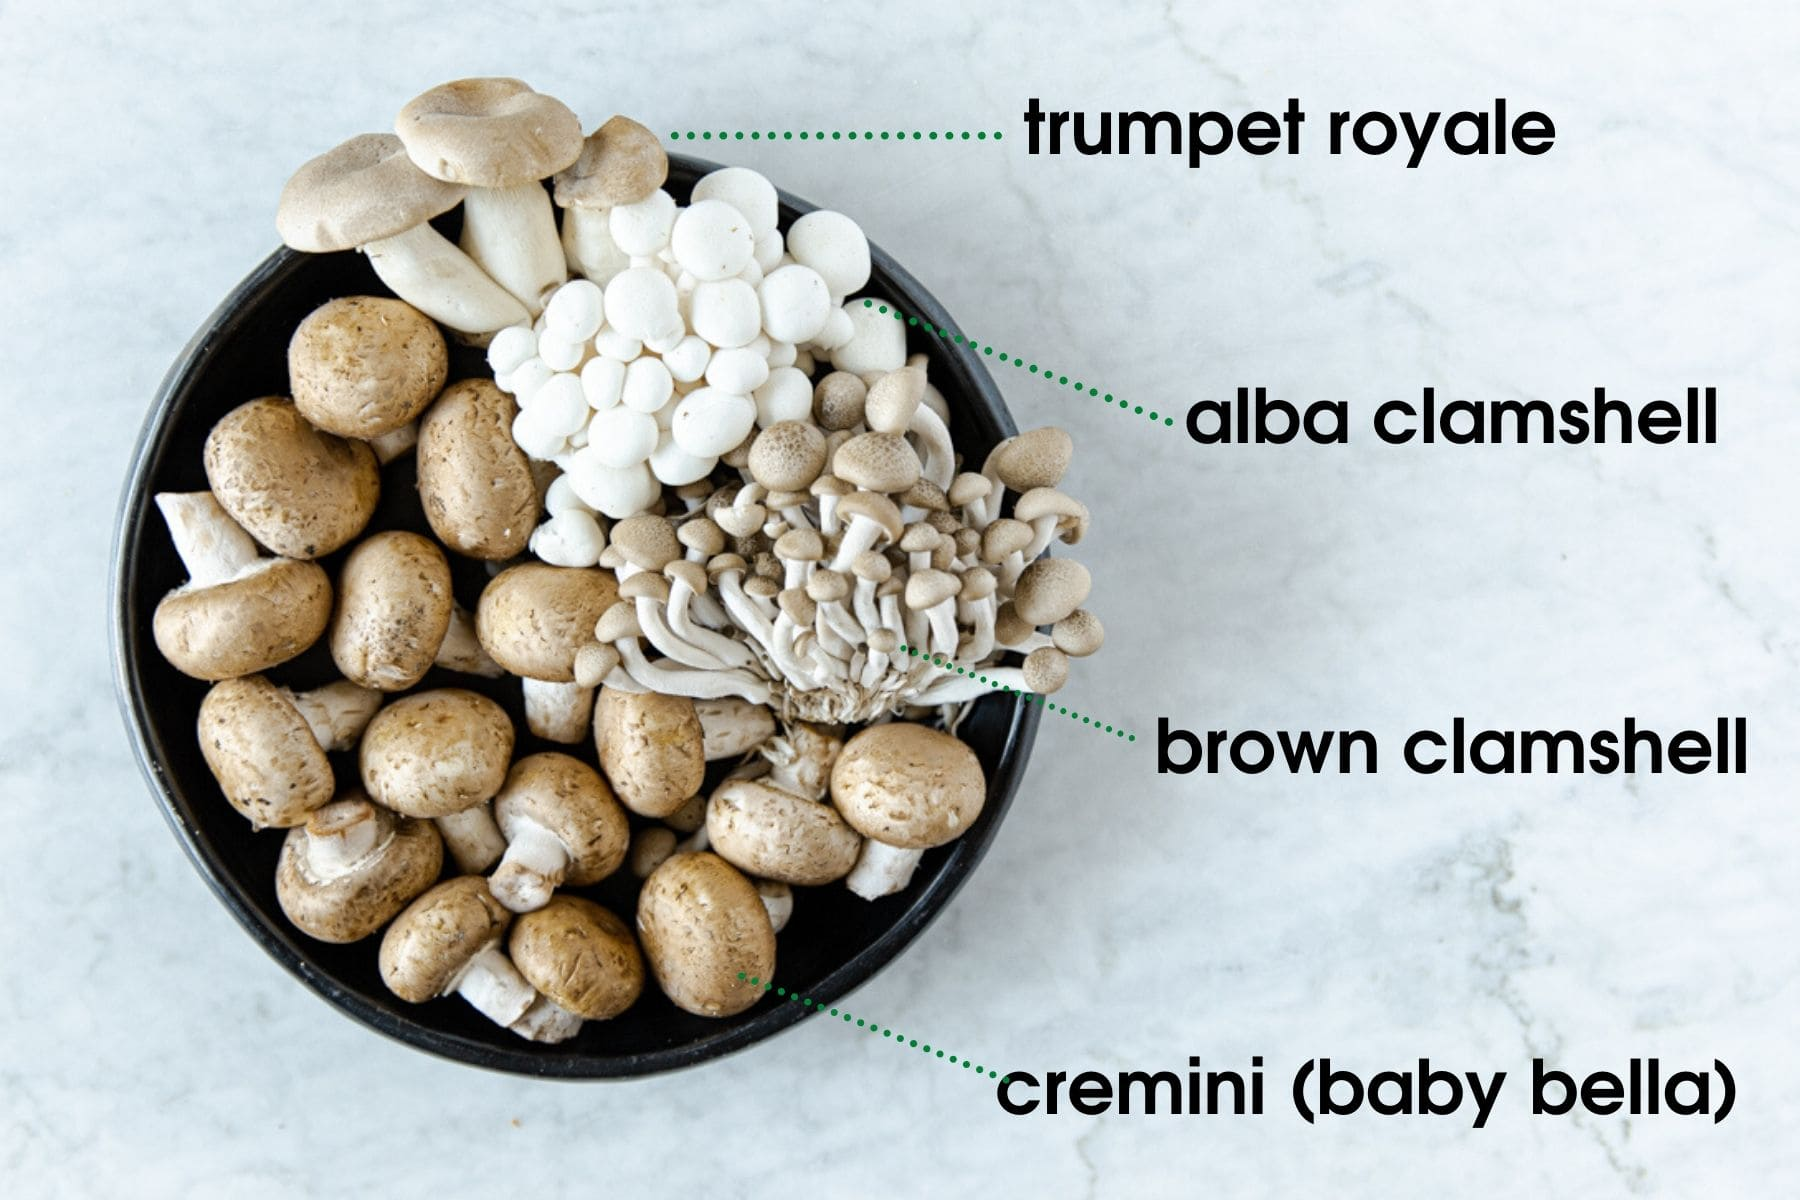 a plate showing four kinds of mushrooms: trumpets, white and brown clamshells and crimini